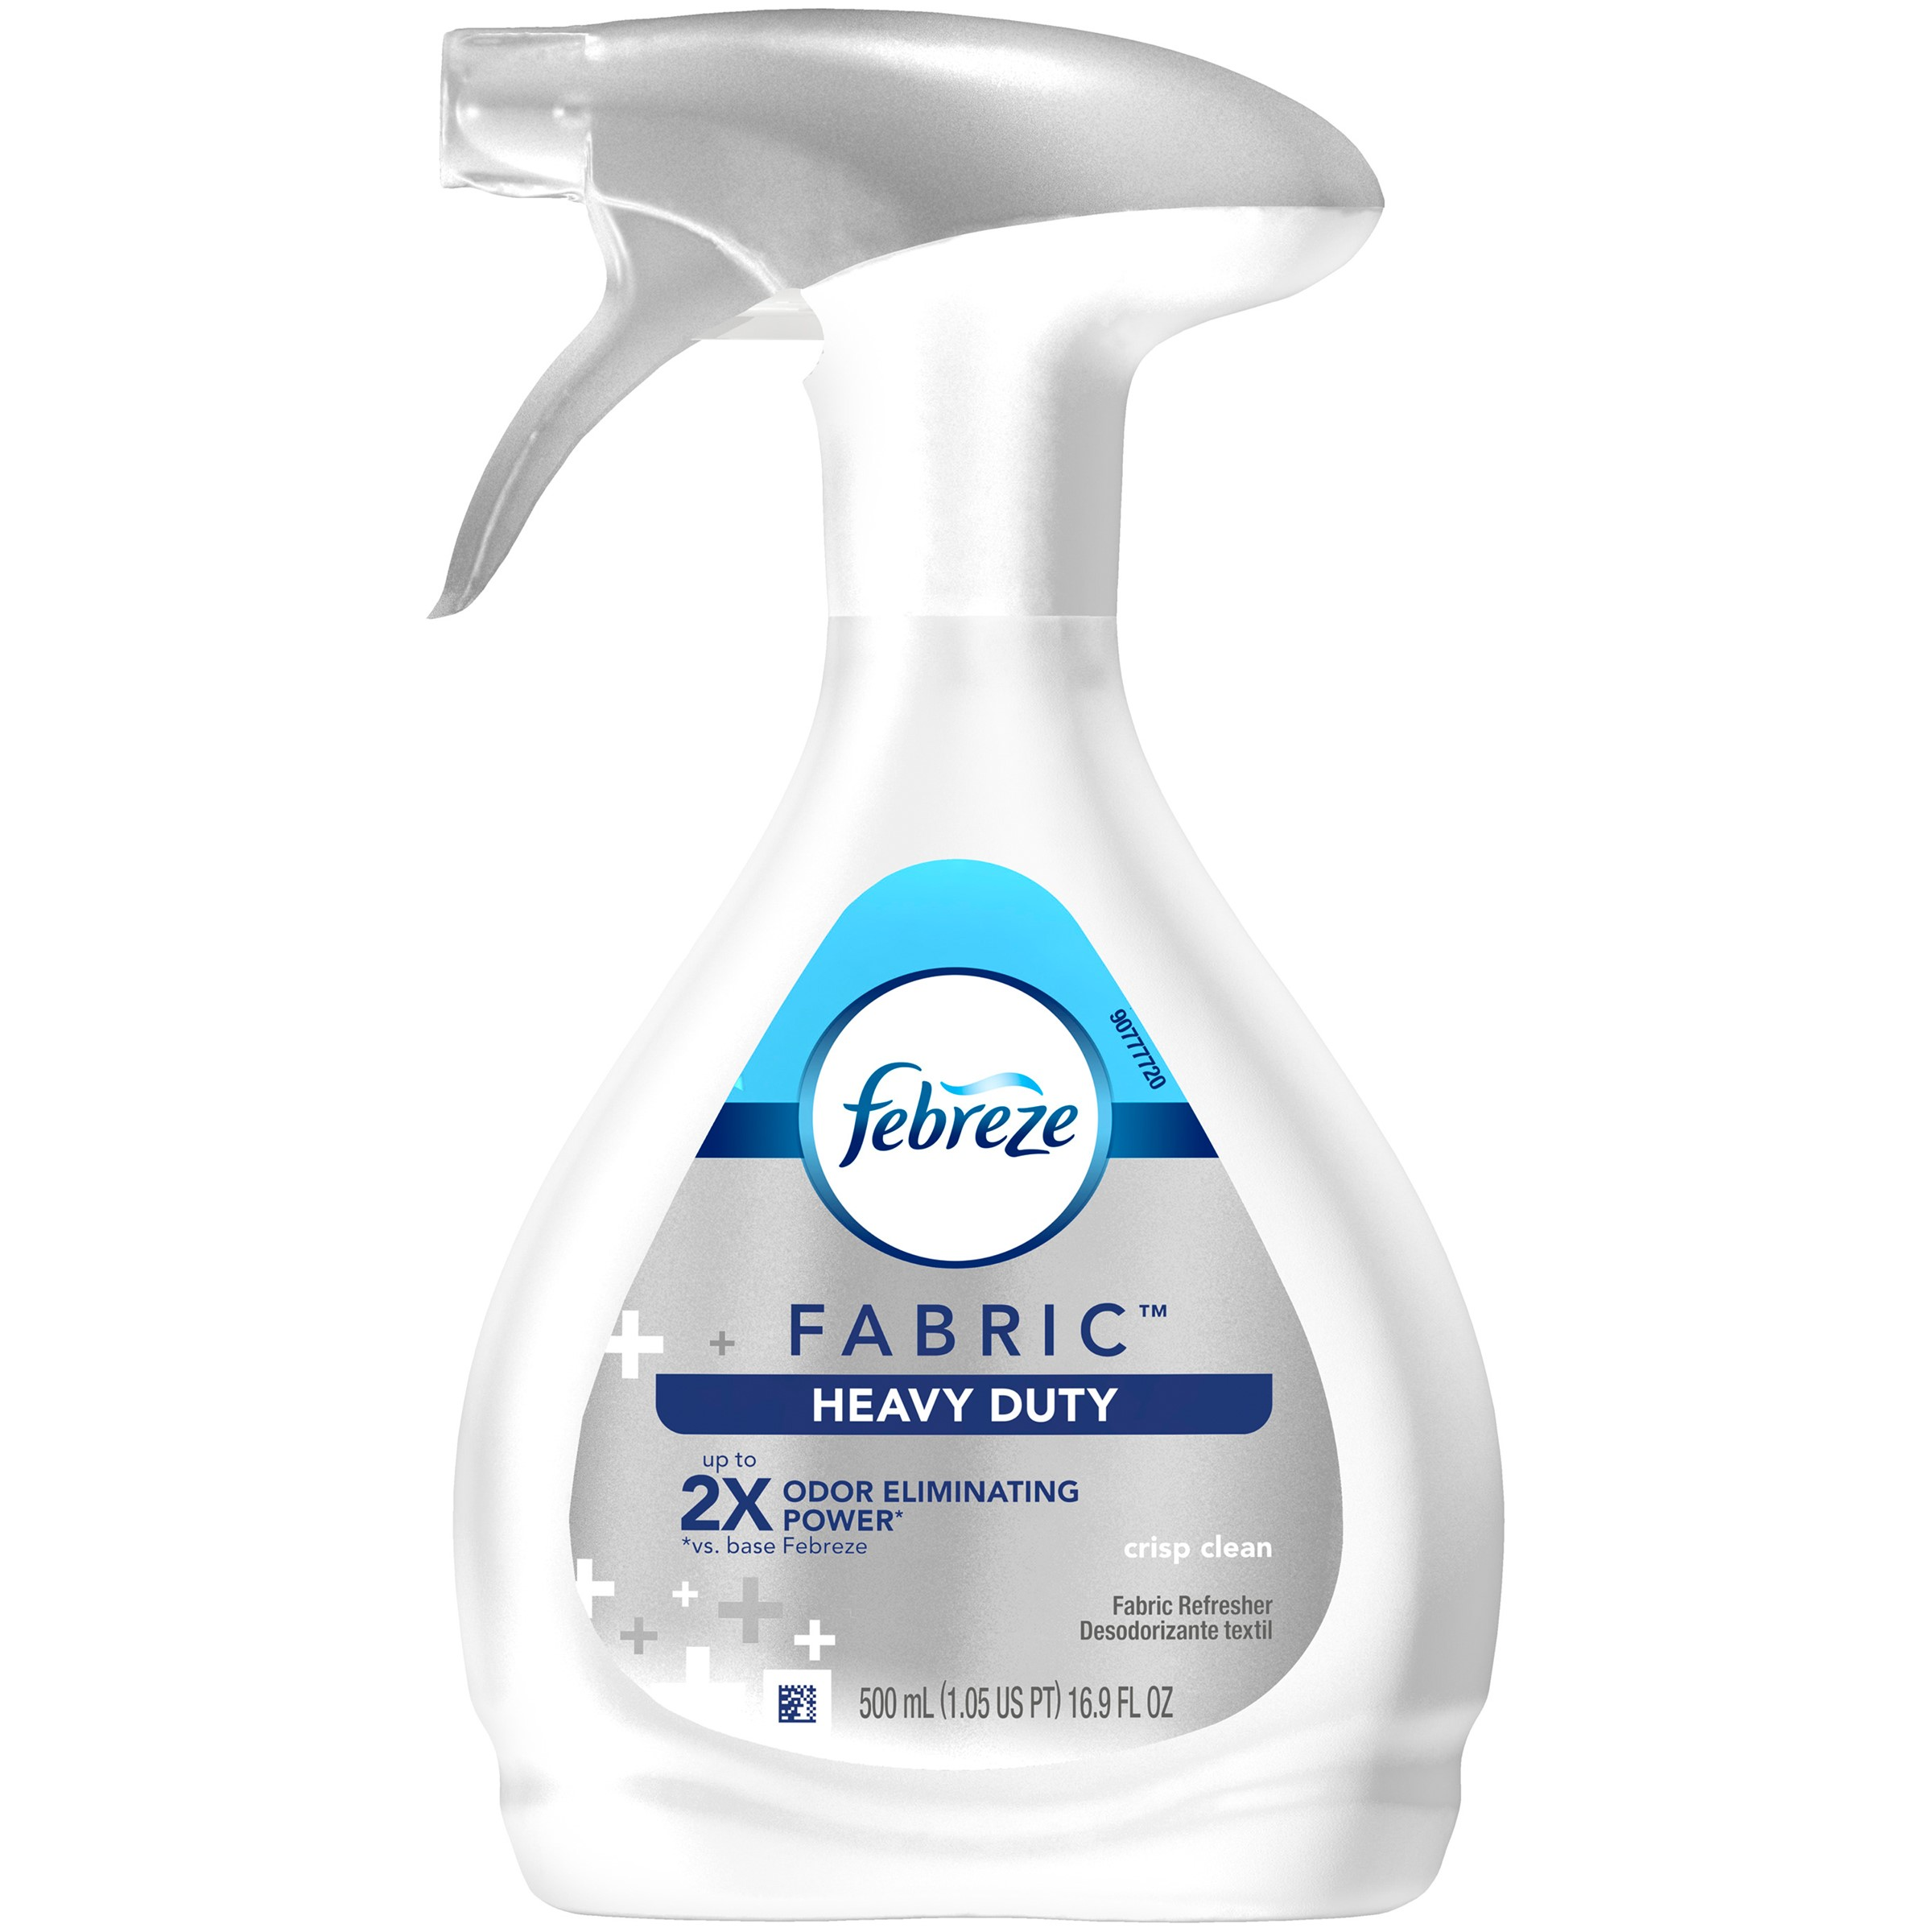 Febreze Heavy Duty FABRIC Refresher, Crisp Clean, 1 Count 16.9 oz